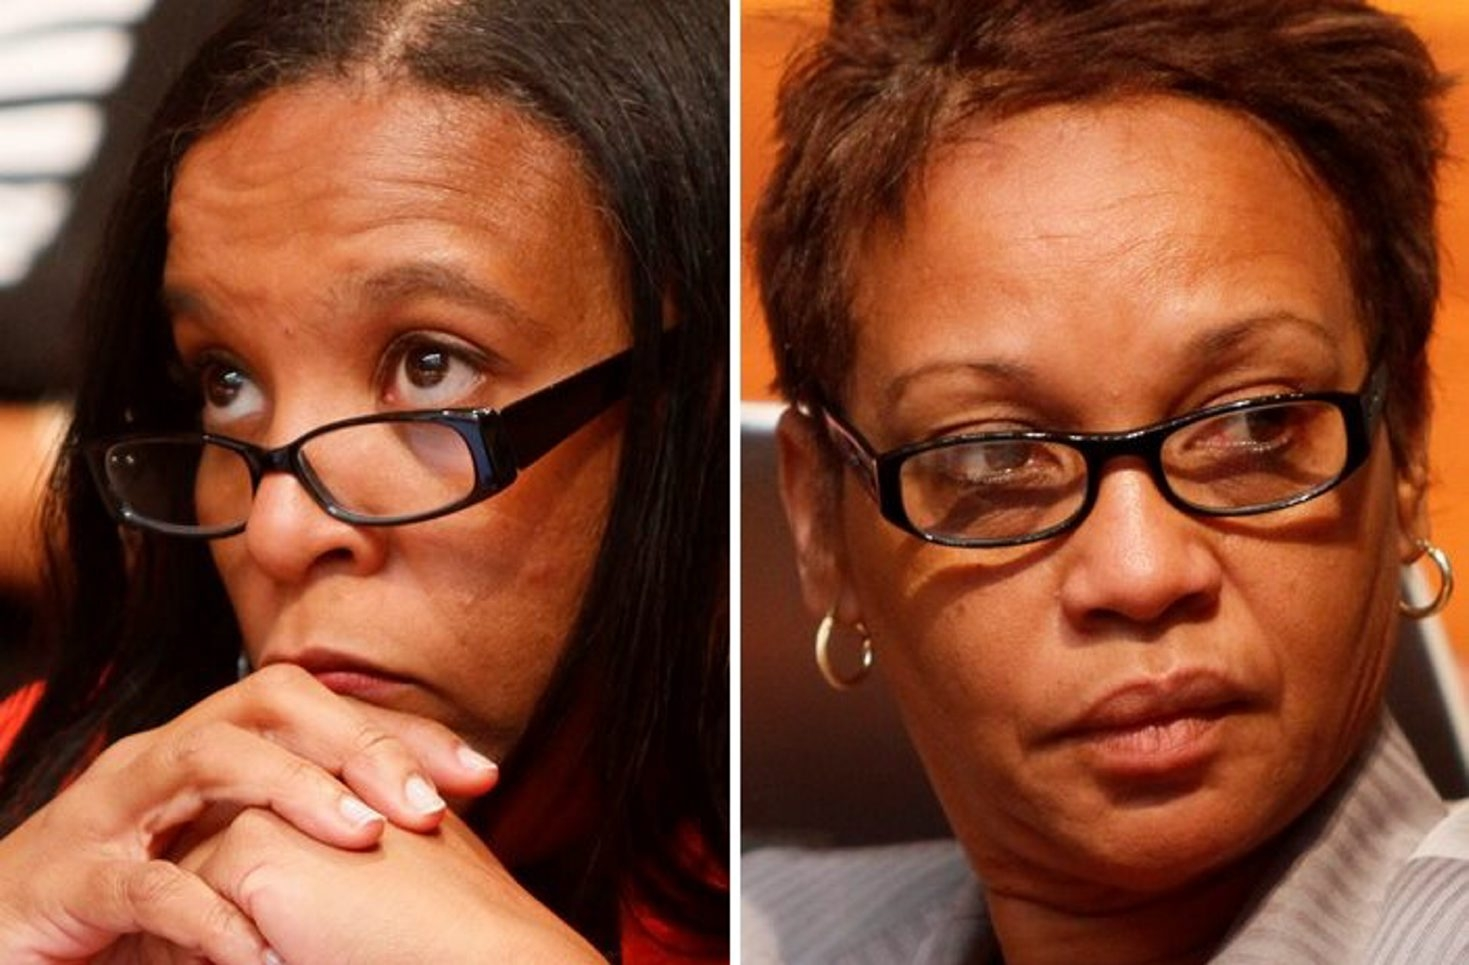 Yamilette Williams and Faith Alexander are no longer employed by the Buffalo School district.